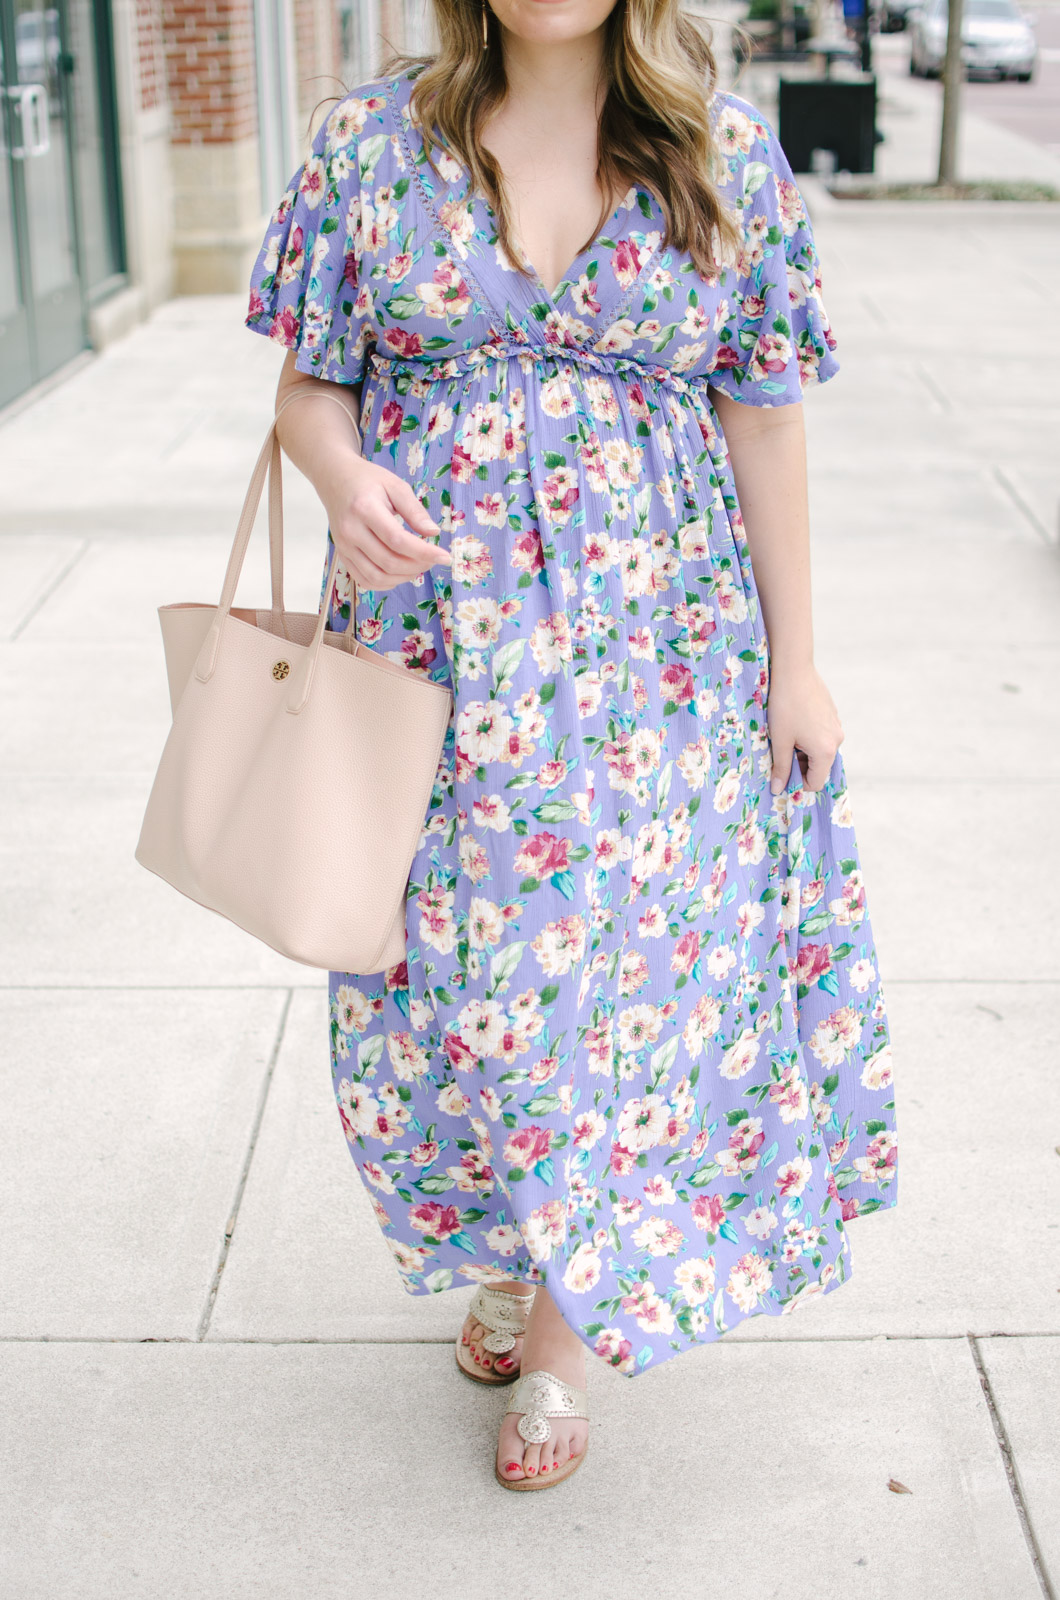 spring maternity outfit ideas - non-maternity must-have maxi dresses spring pregnancy | bylaurenm.com